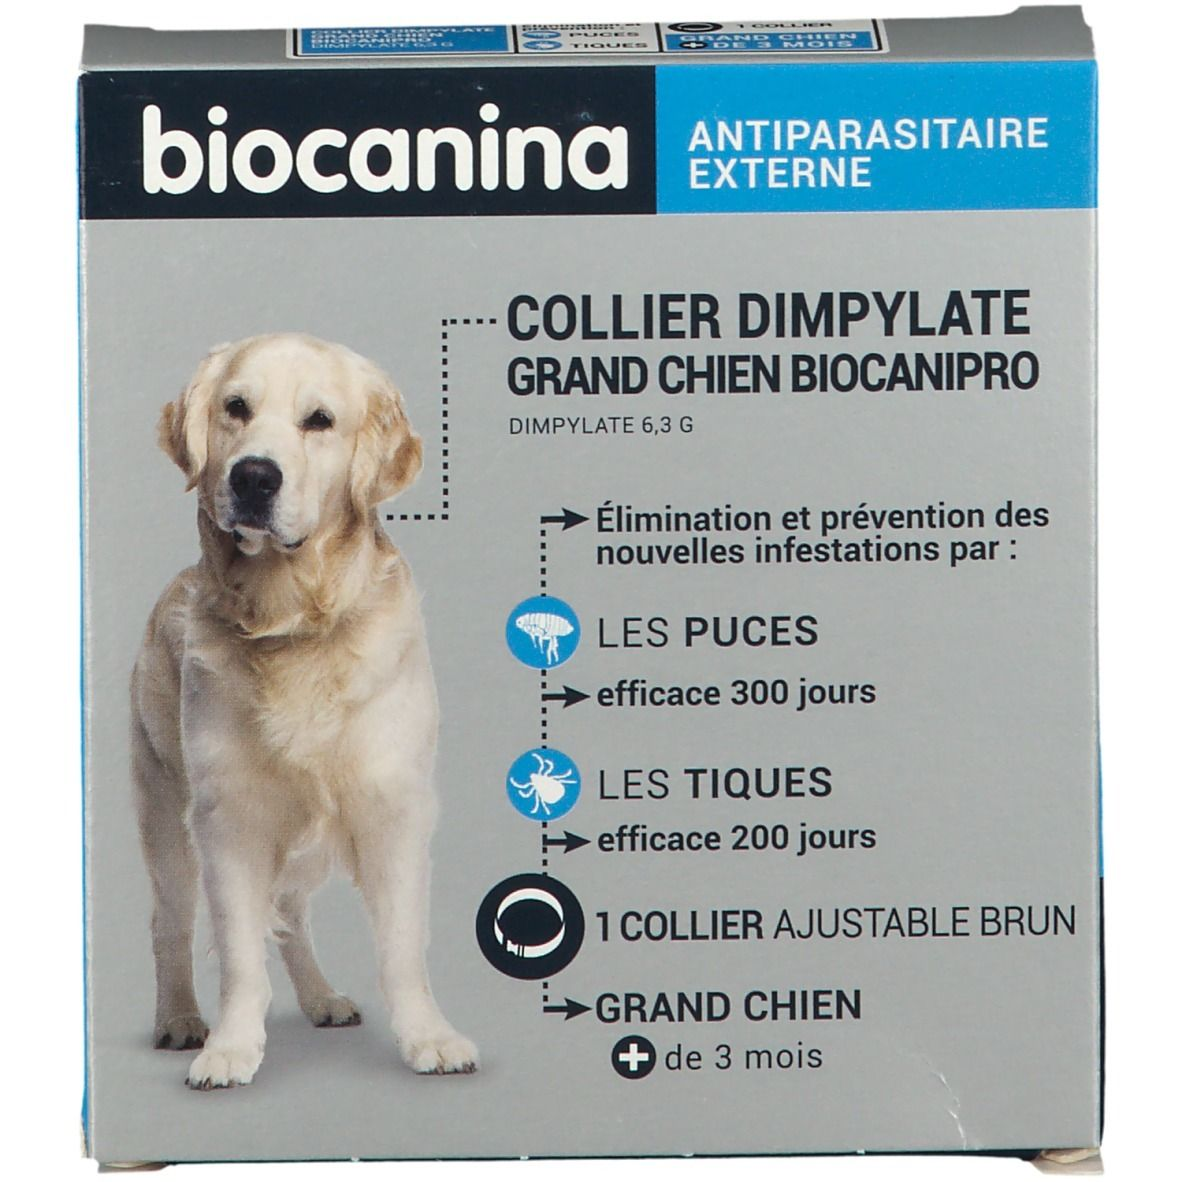 Image of Biocanina Collier insecticide Biocanipro pour grand chien